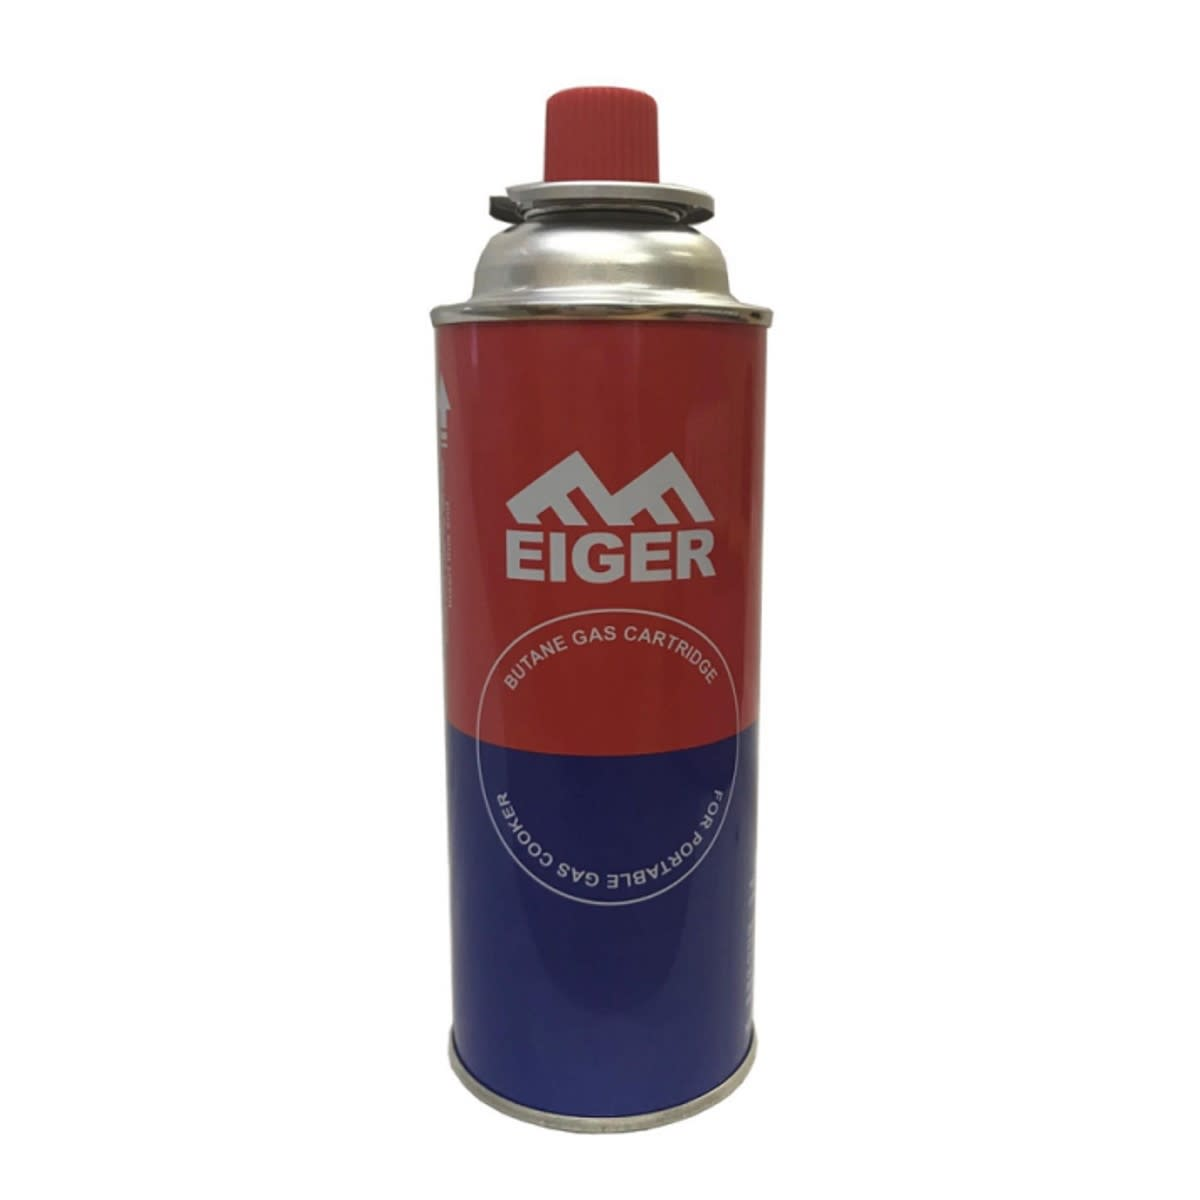 Eiger Butane Gas Cartridge 220g